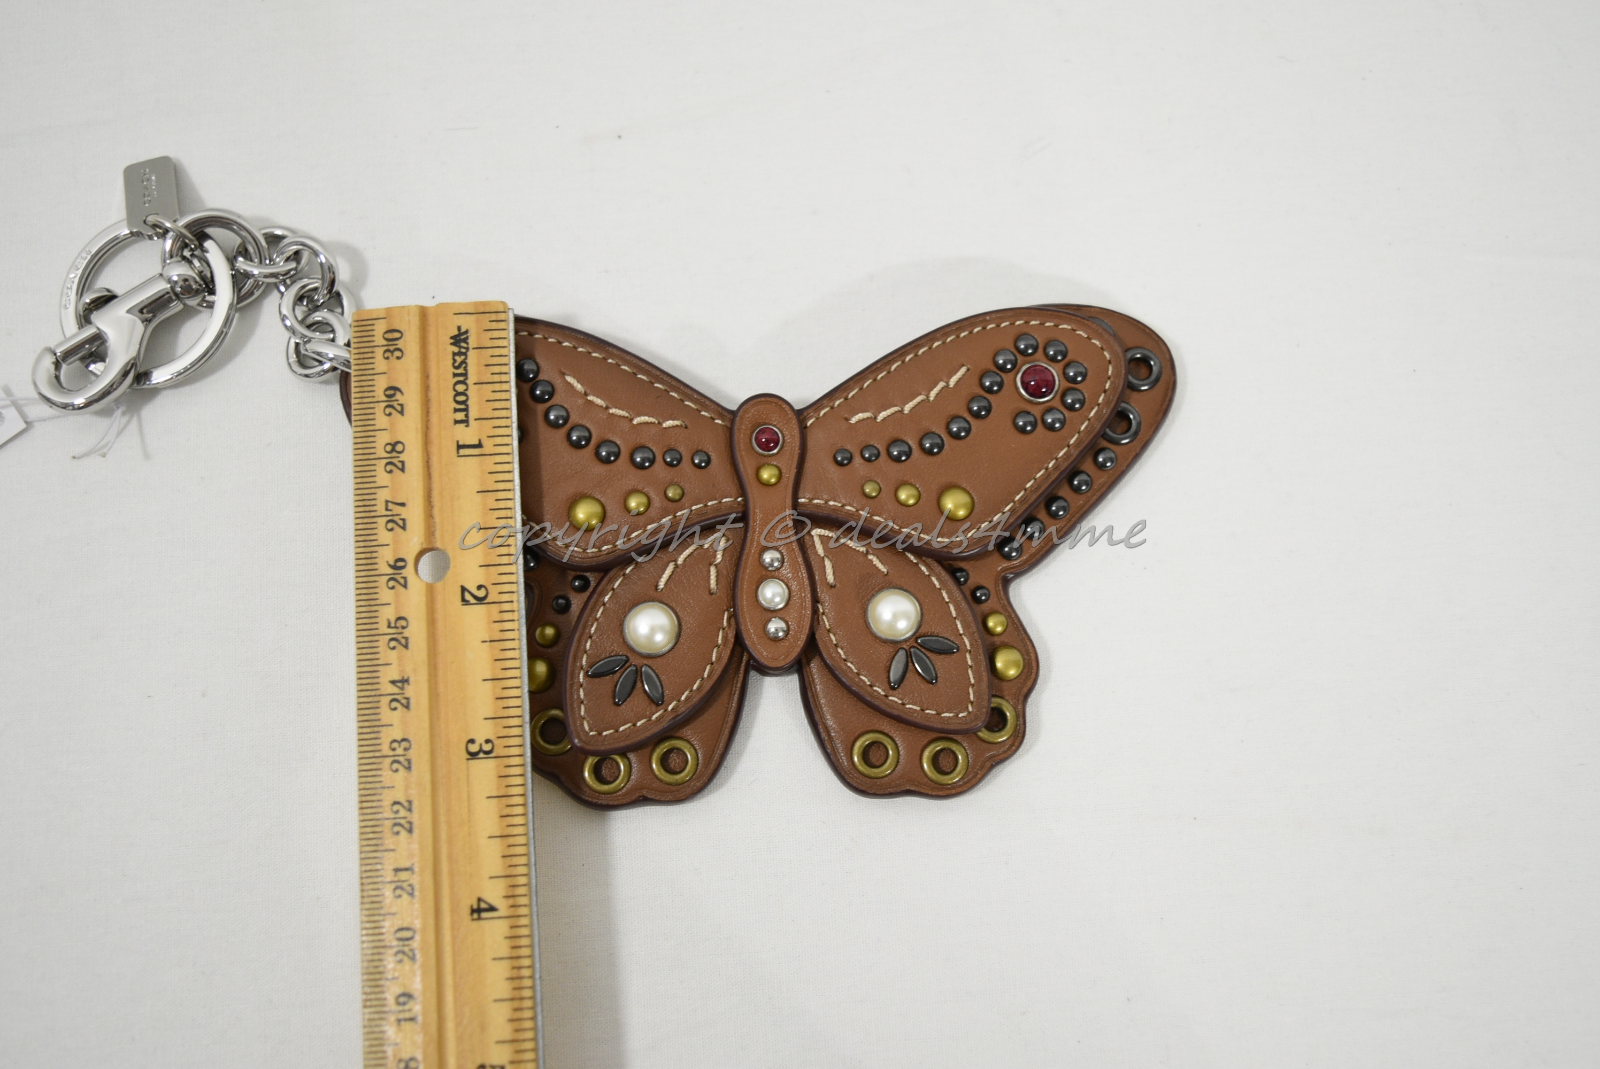 Coach F58996 /F58997 Studded Leather Butterfly Keyring/Key-Clip/ Bag Charm Brown image 13